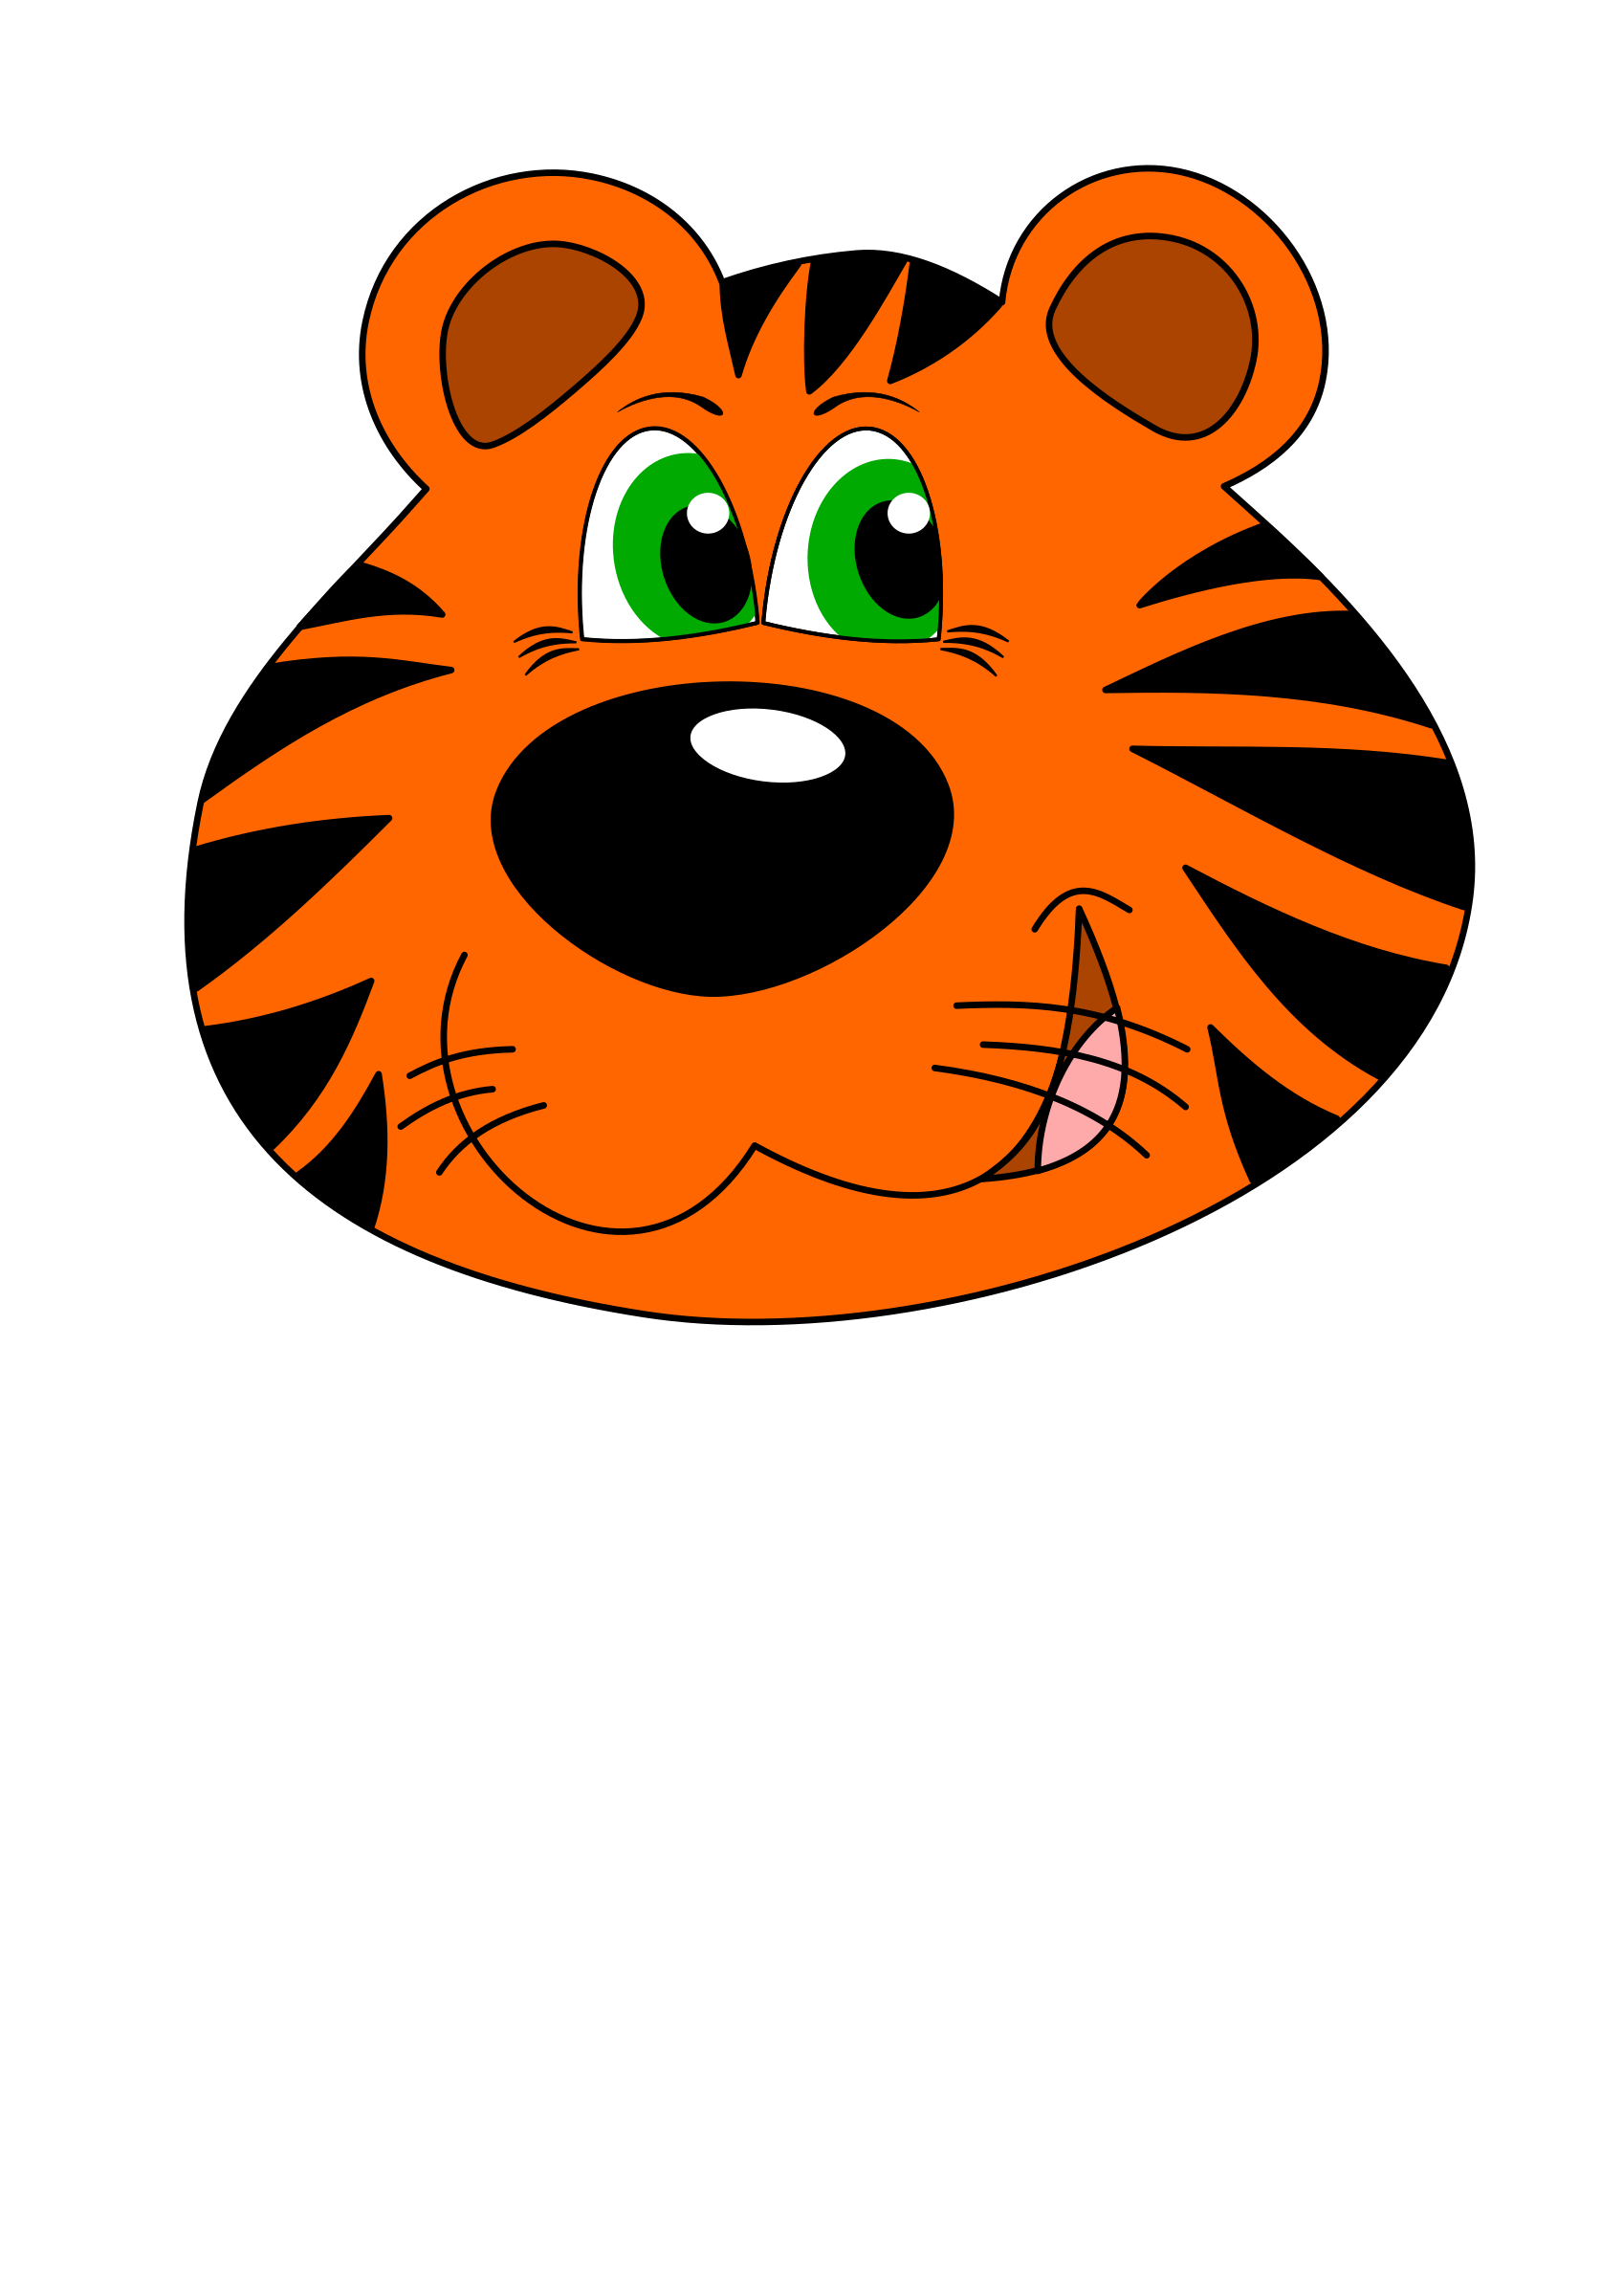 Cartoon tiger by Susa